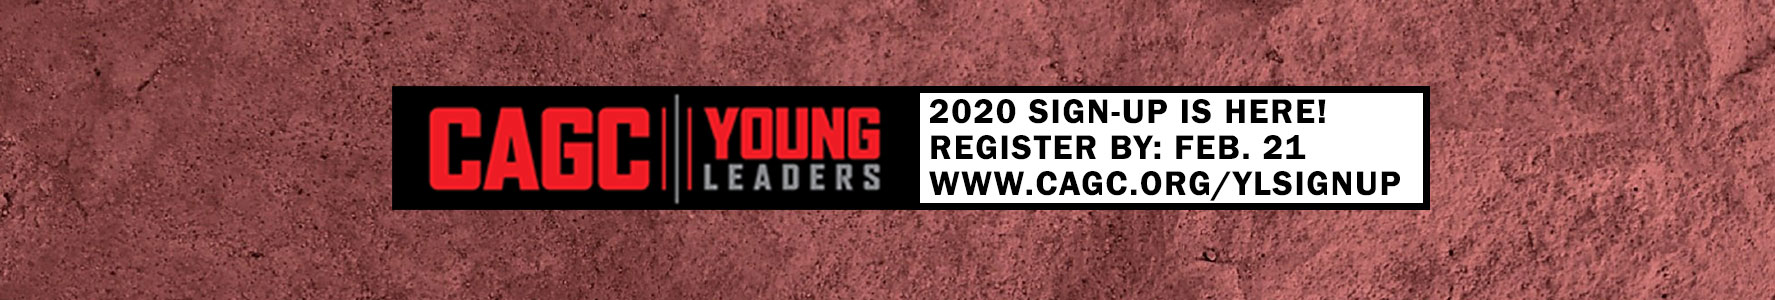 Young Leader Sign-Up